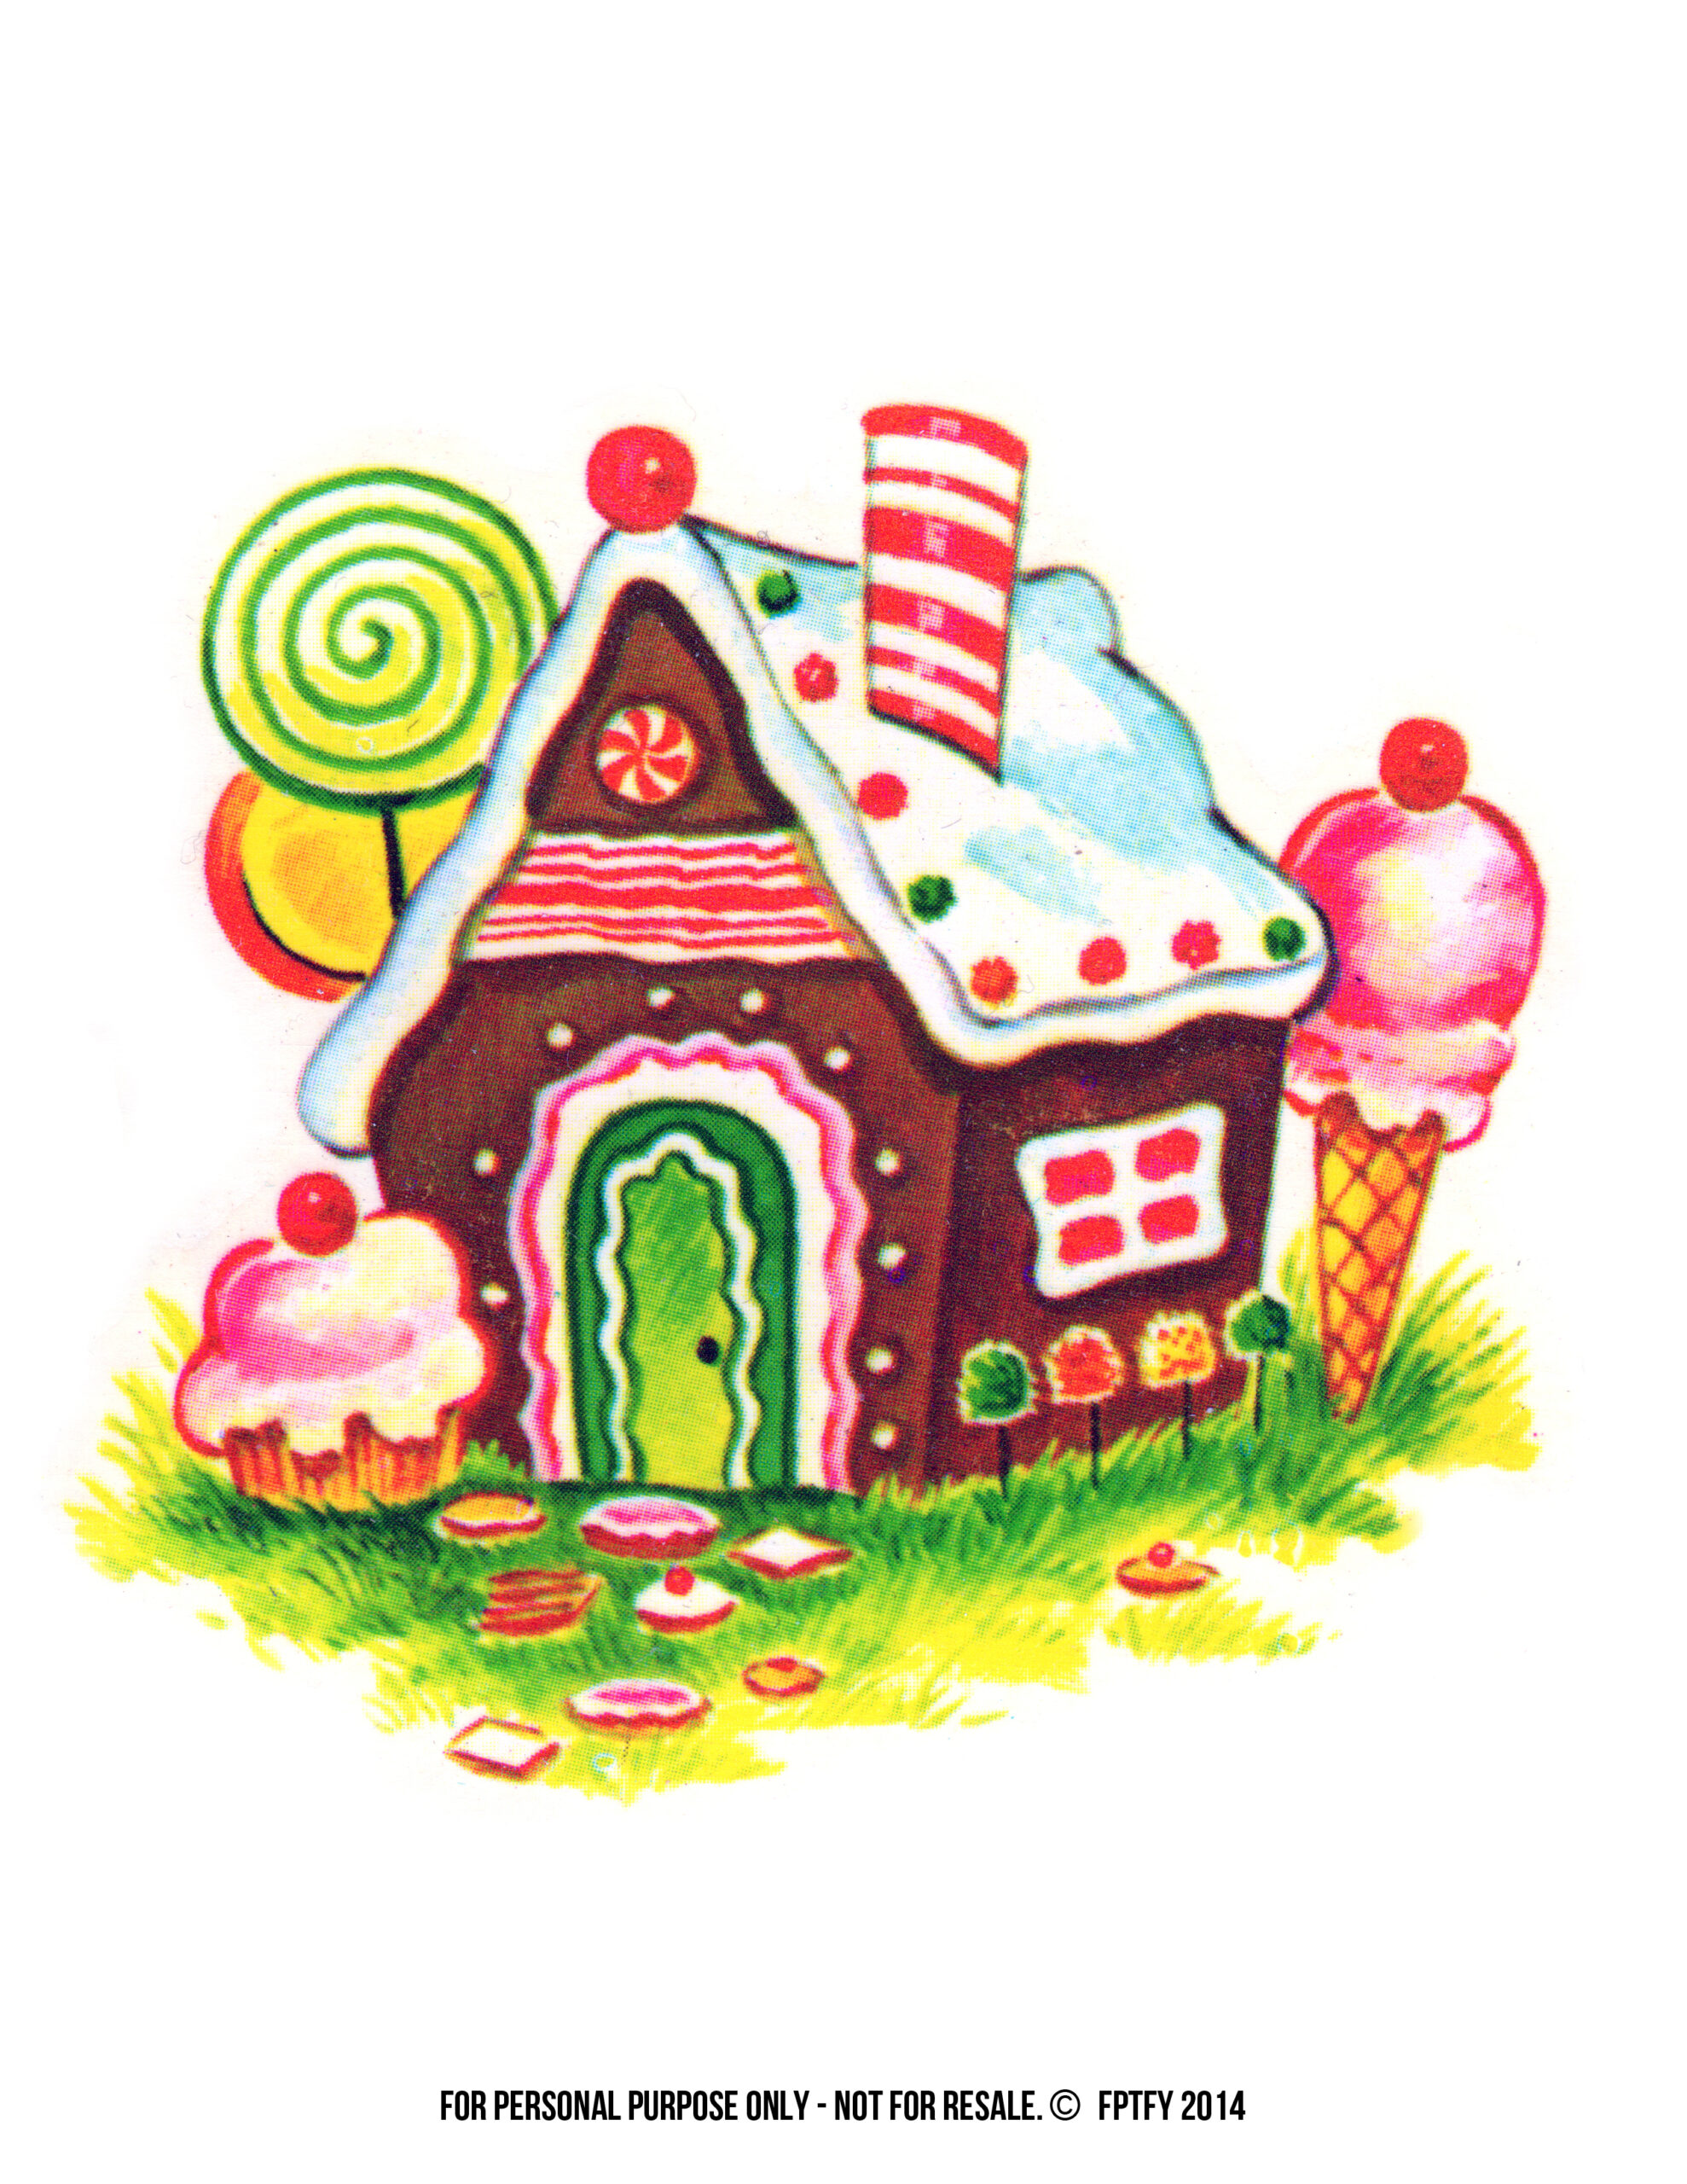 free gingerbread house clipart - photo #18